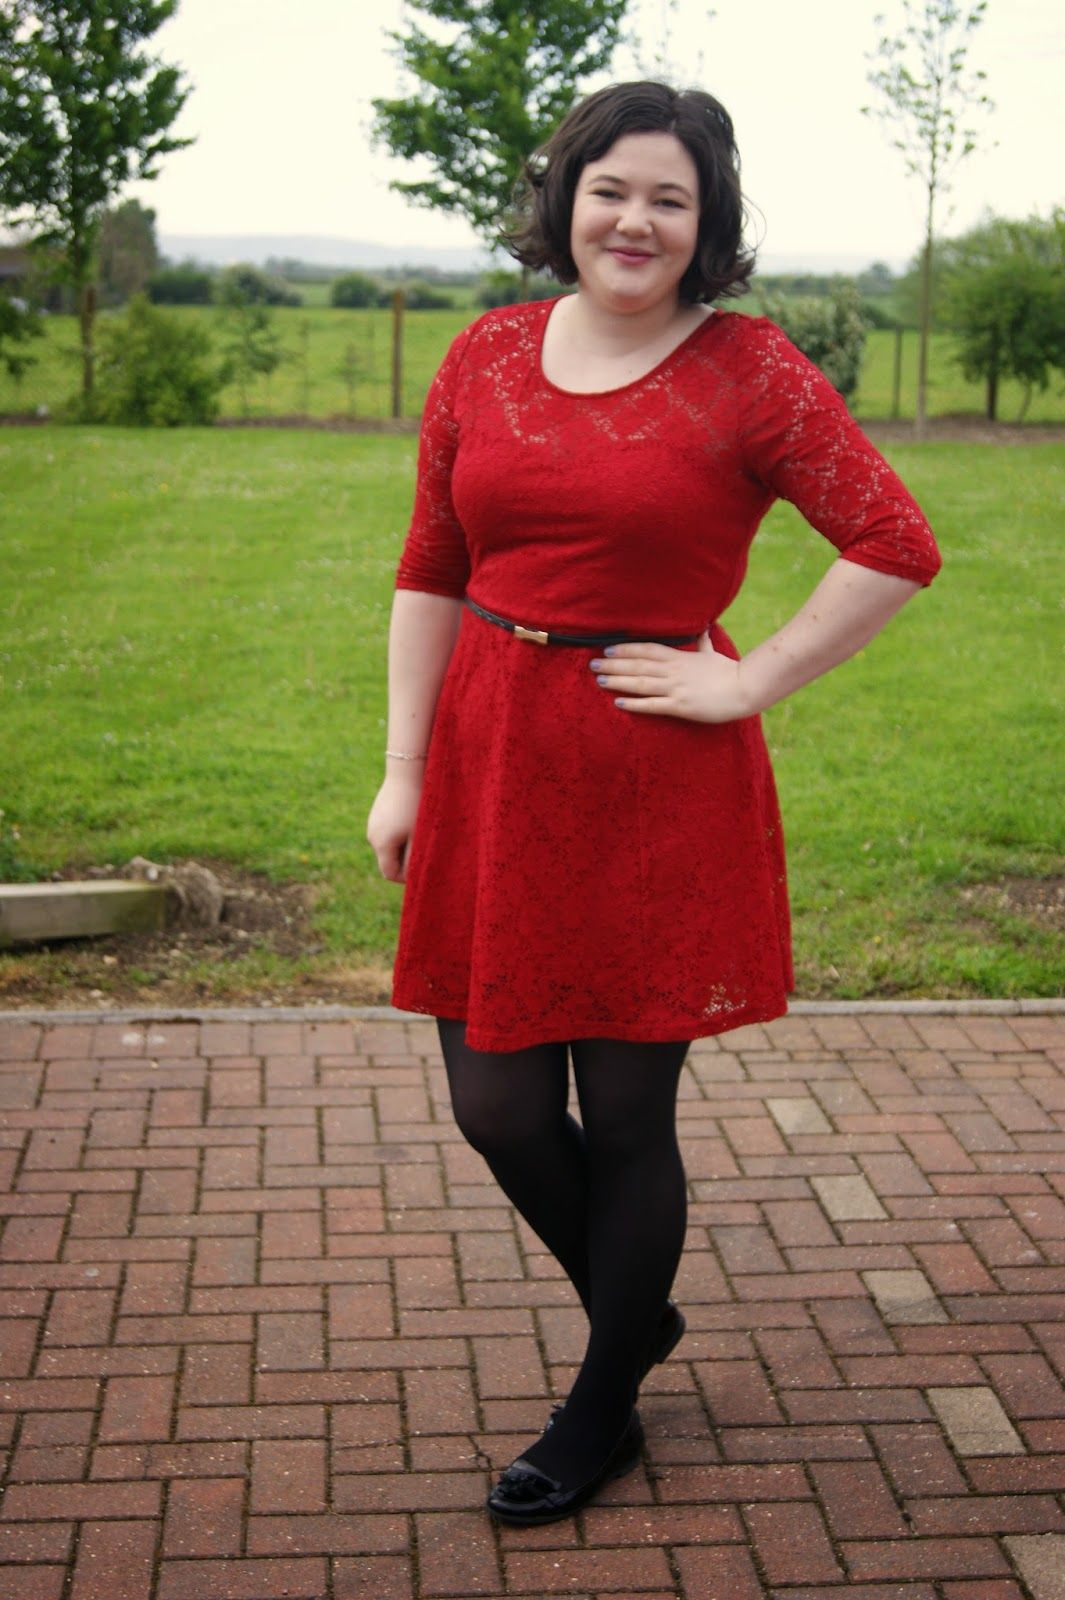 Everyday Red Lace Dress From New Look Black Tights And